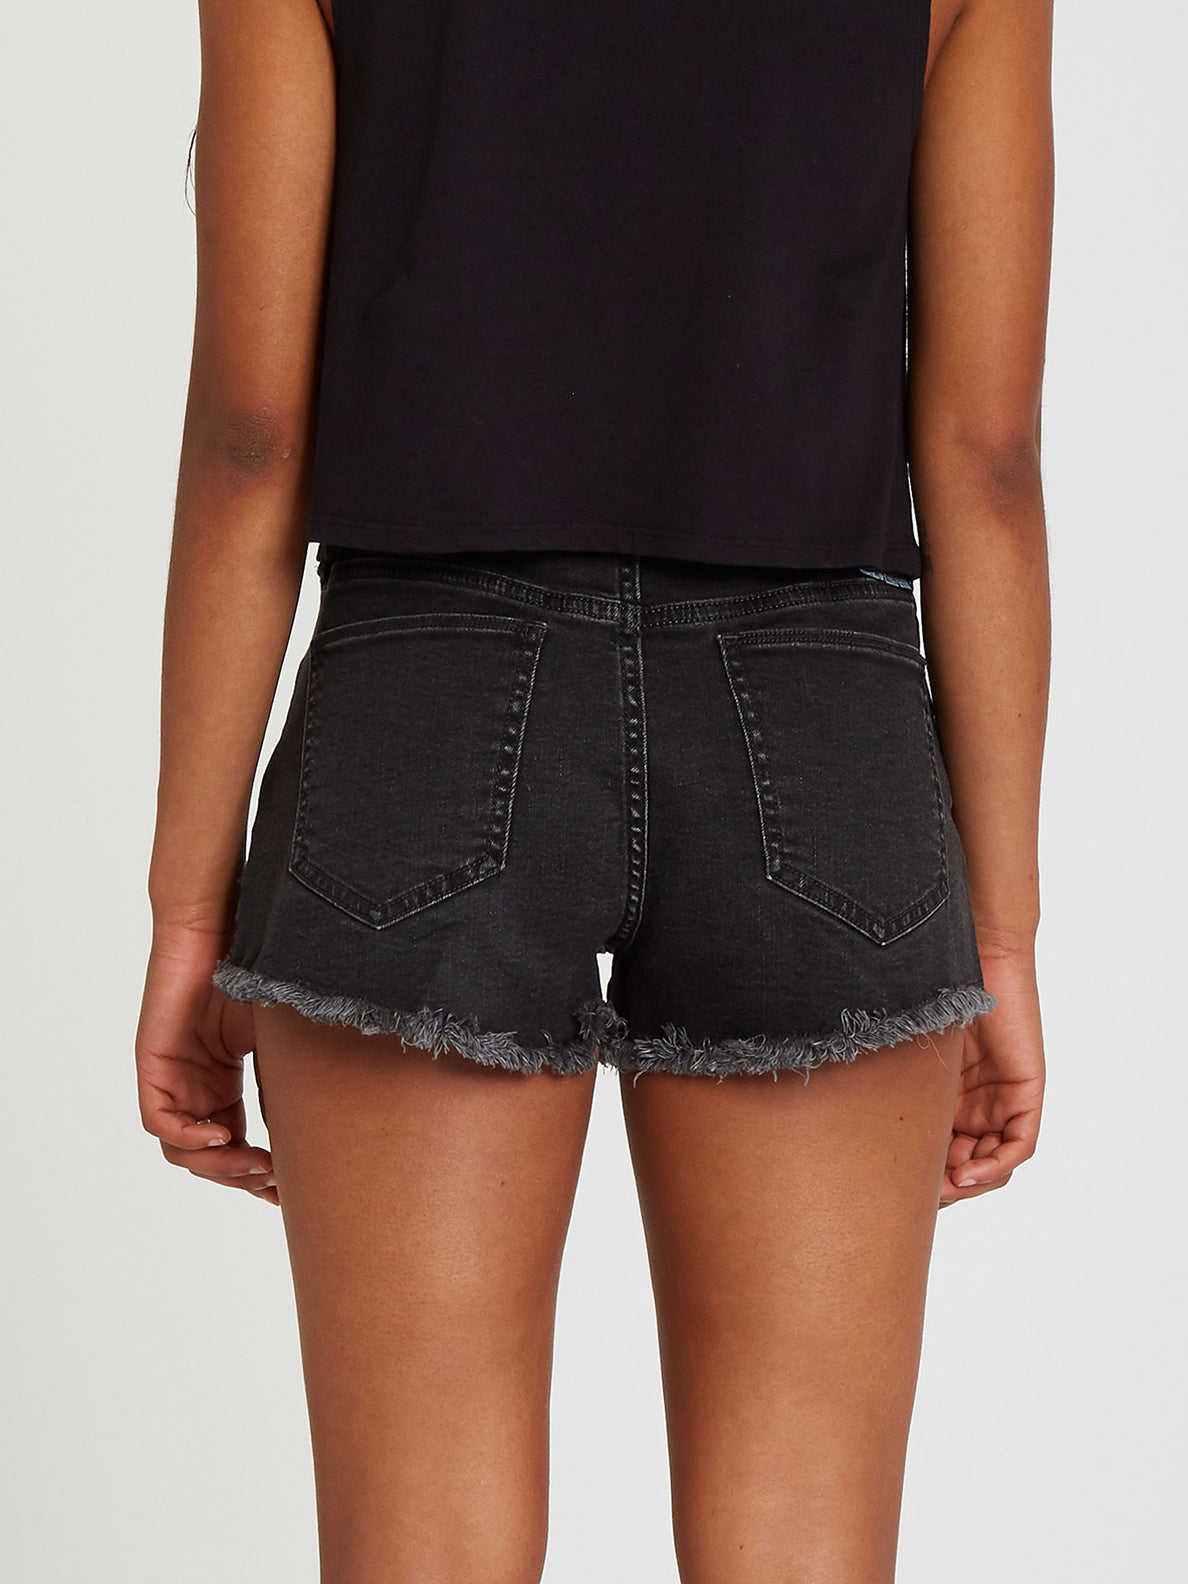 Stoney Stretch Short Asphalt Black (B2012101_ASB) [B]